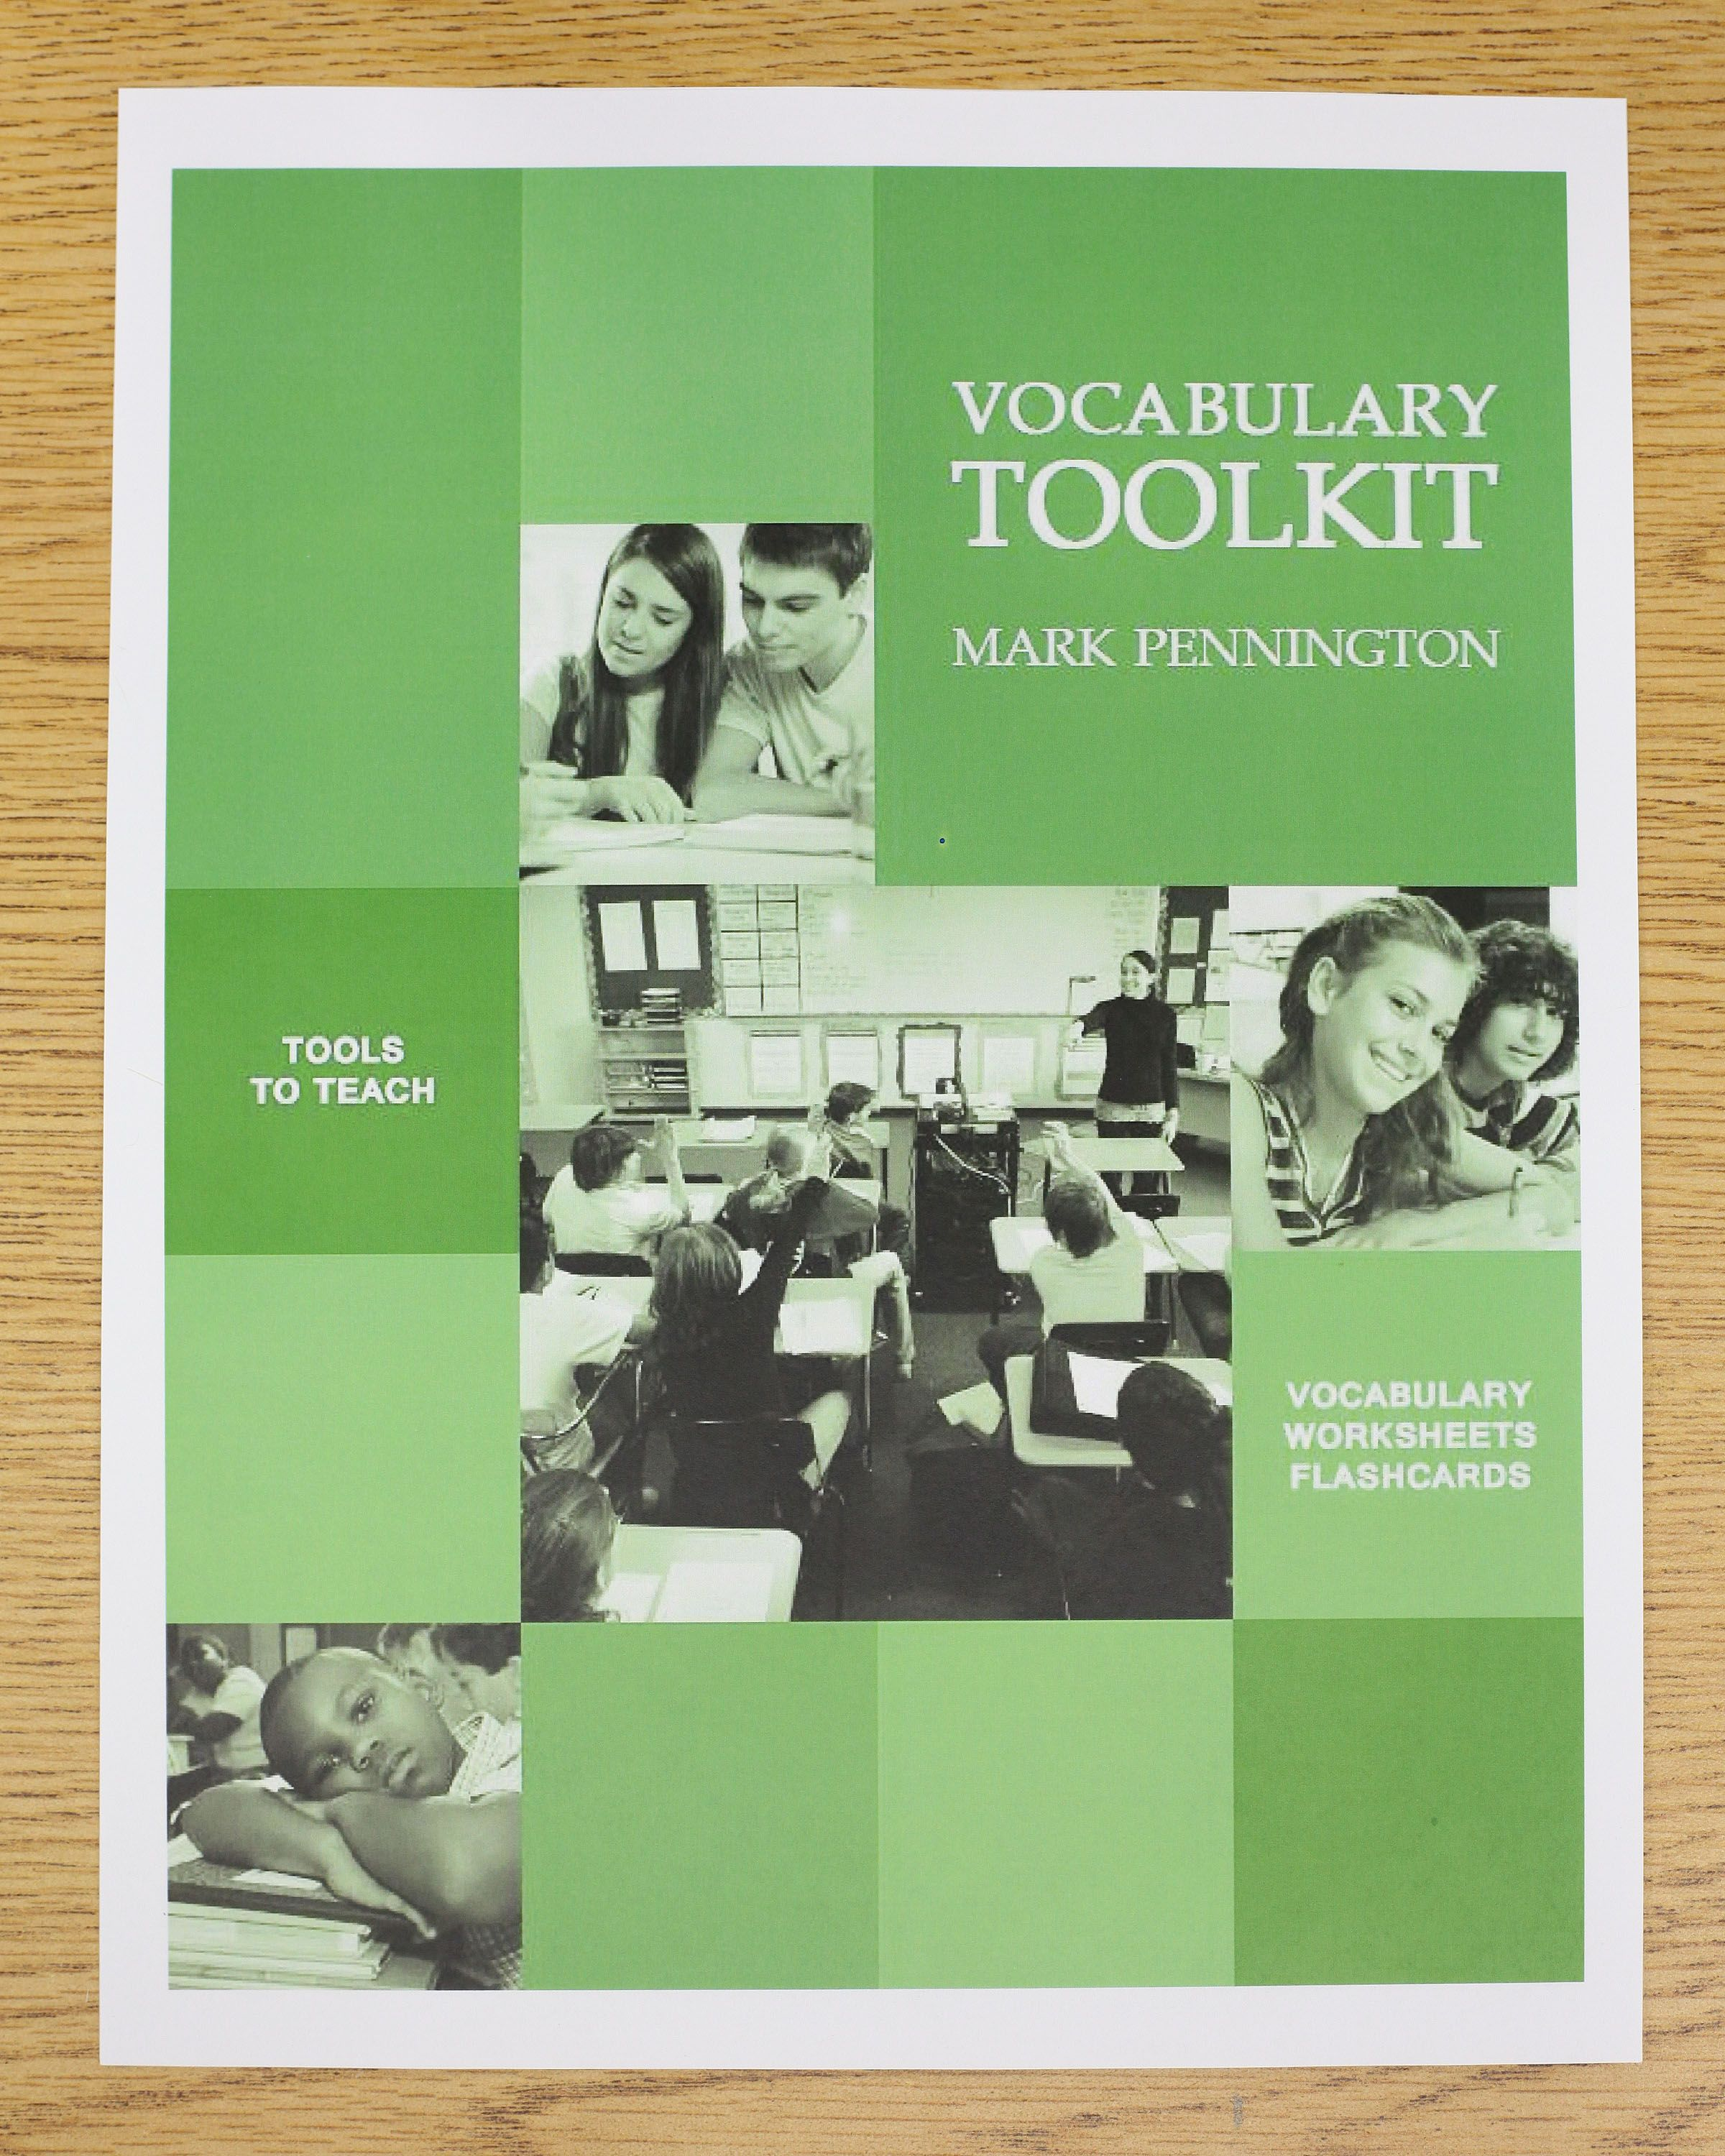 The Common Core Vocabulary Toolkits Grades 4 5 6 7 And